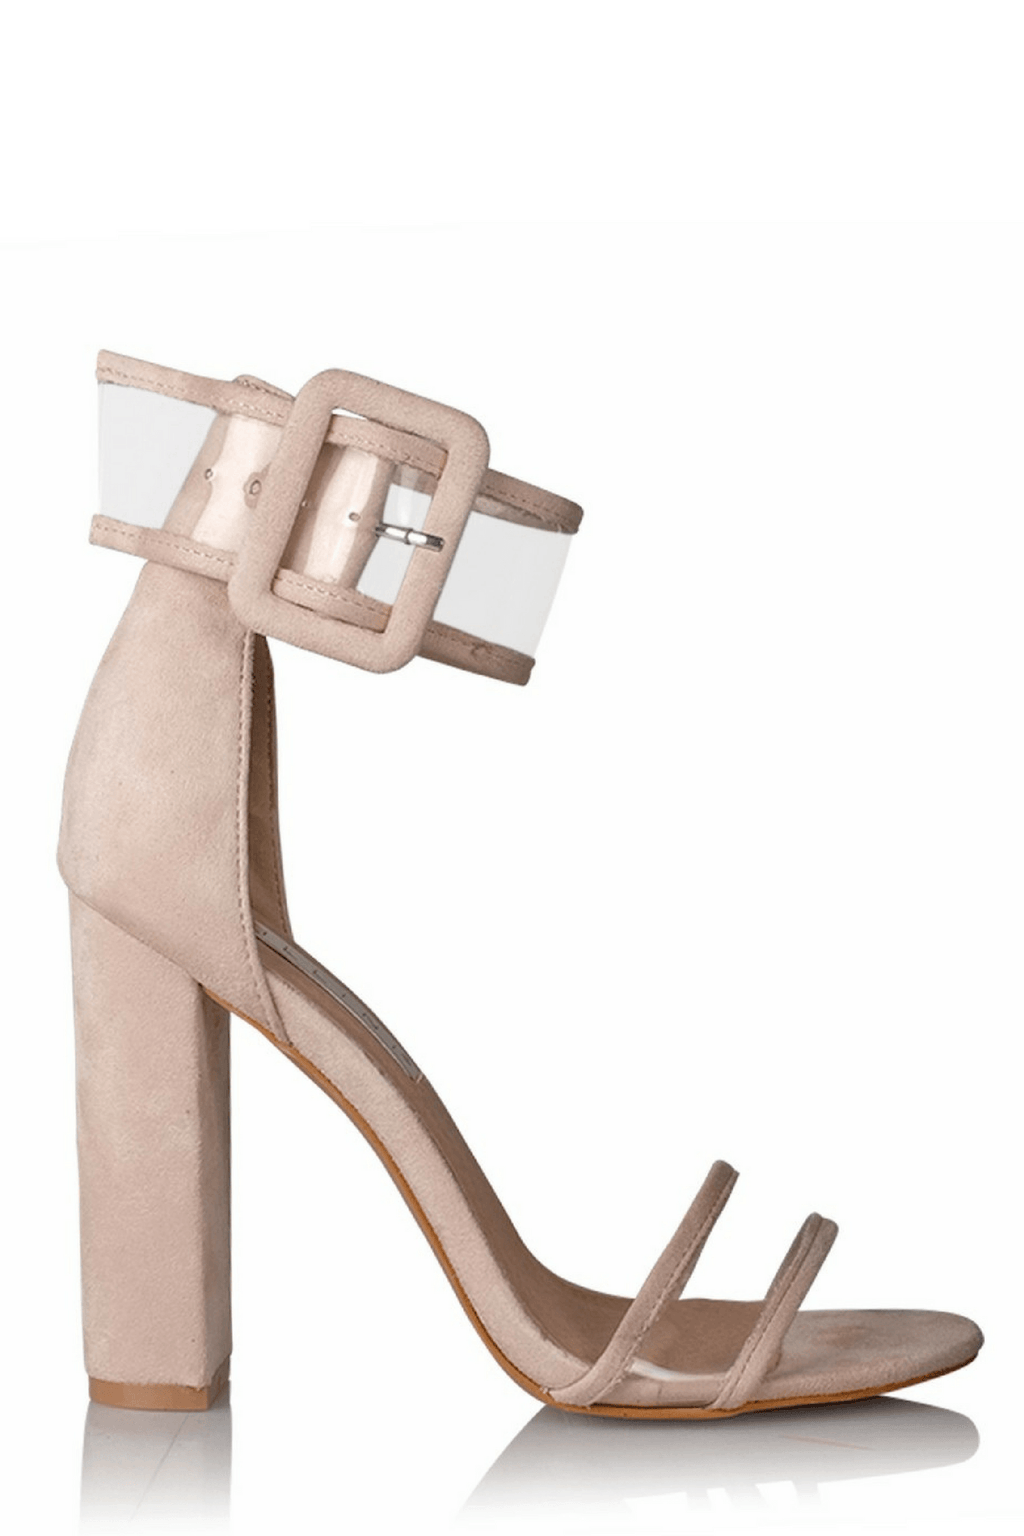 Lexi Heels in Blush Suede - Billini Shoes